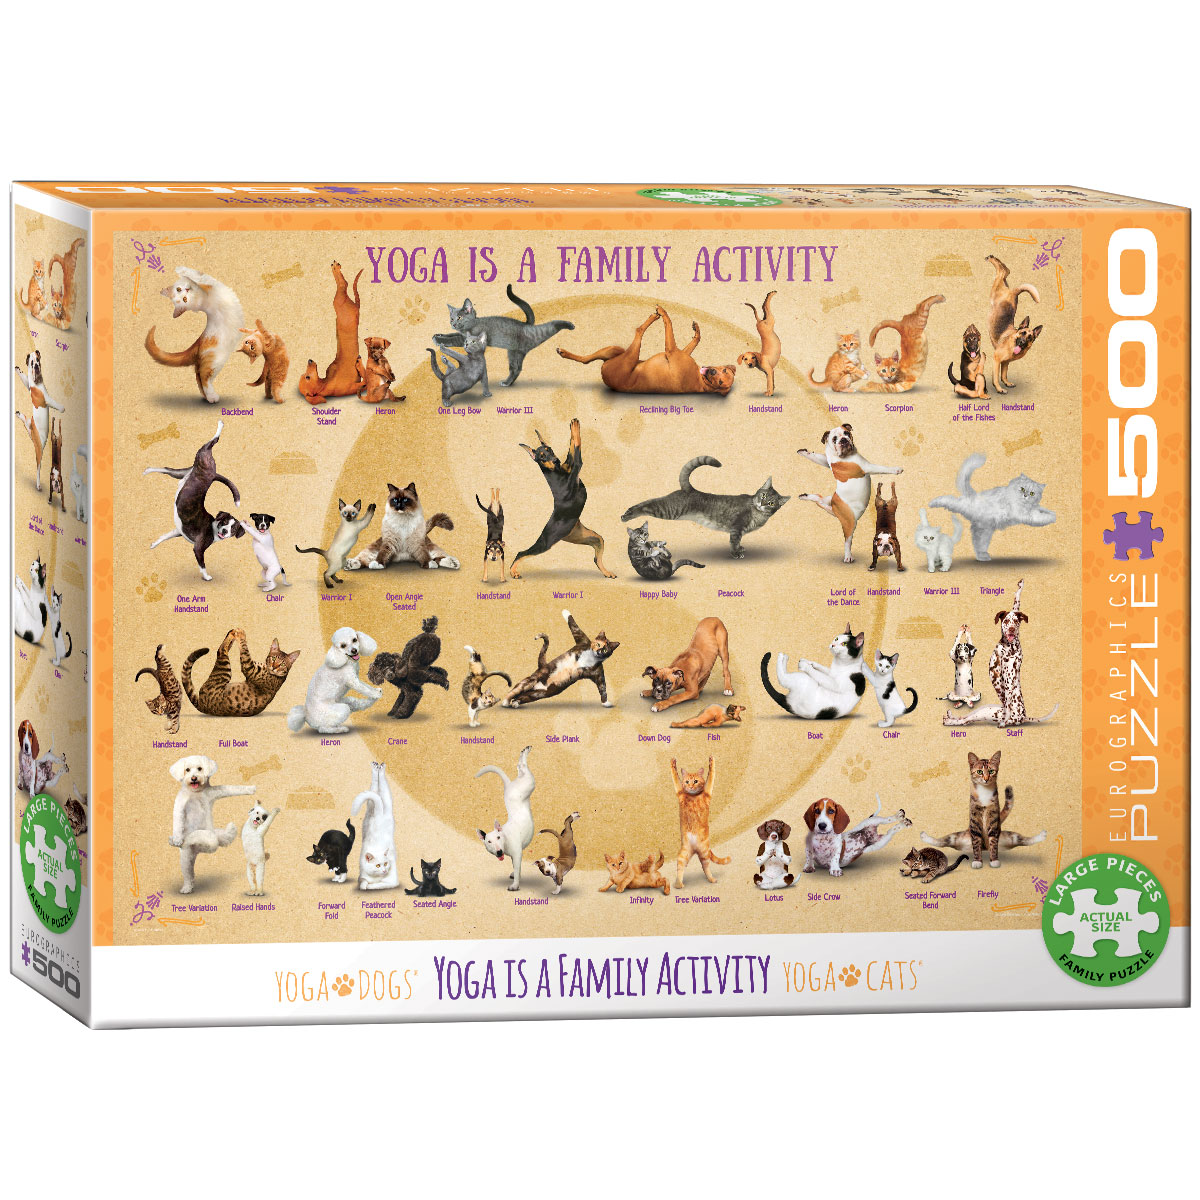 Yoga is a Family Activity